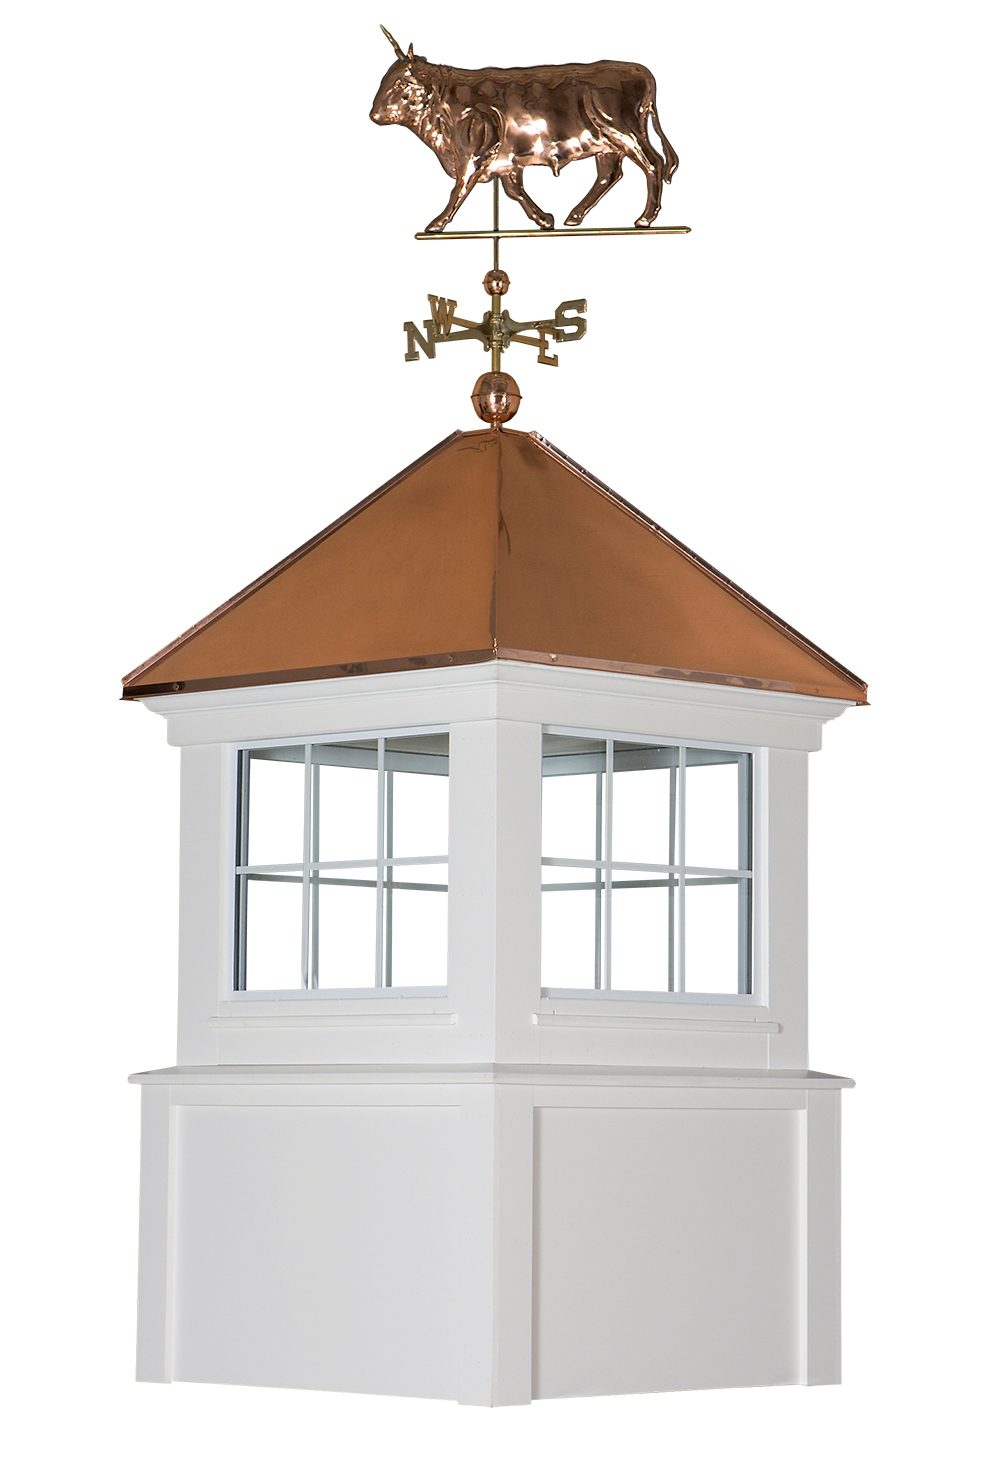 franklin cupola with weathervane